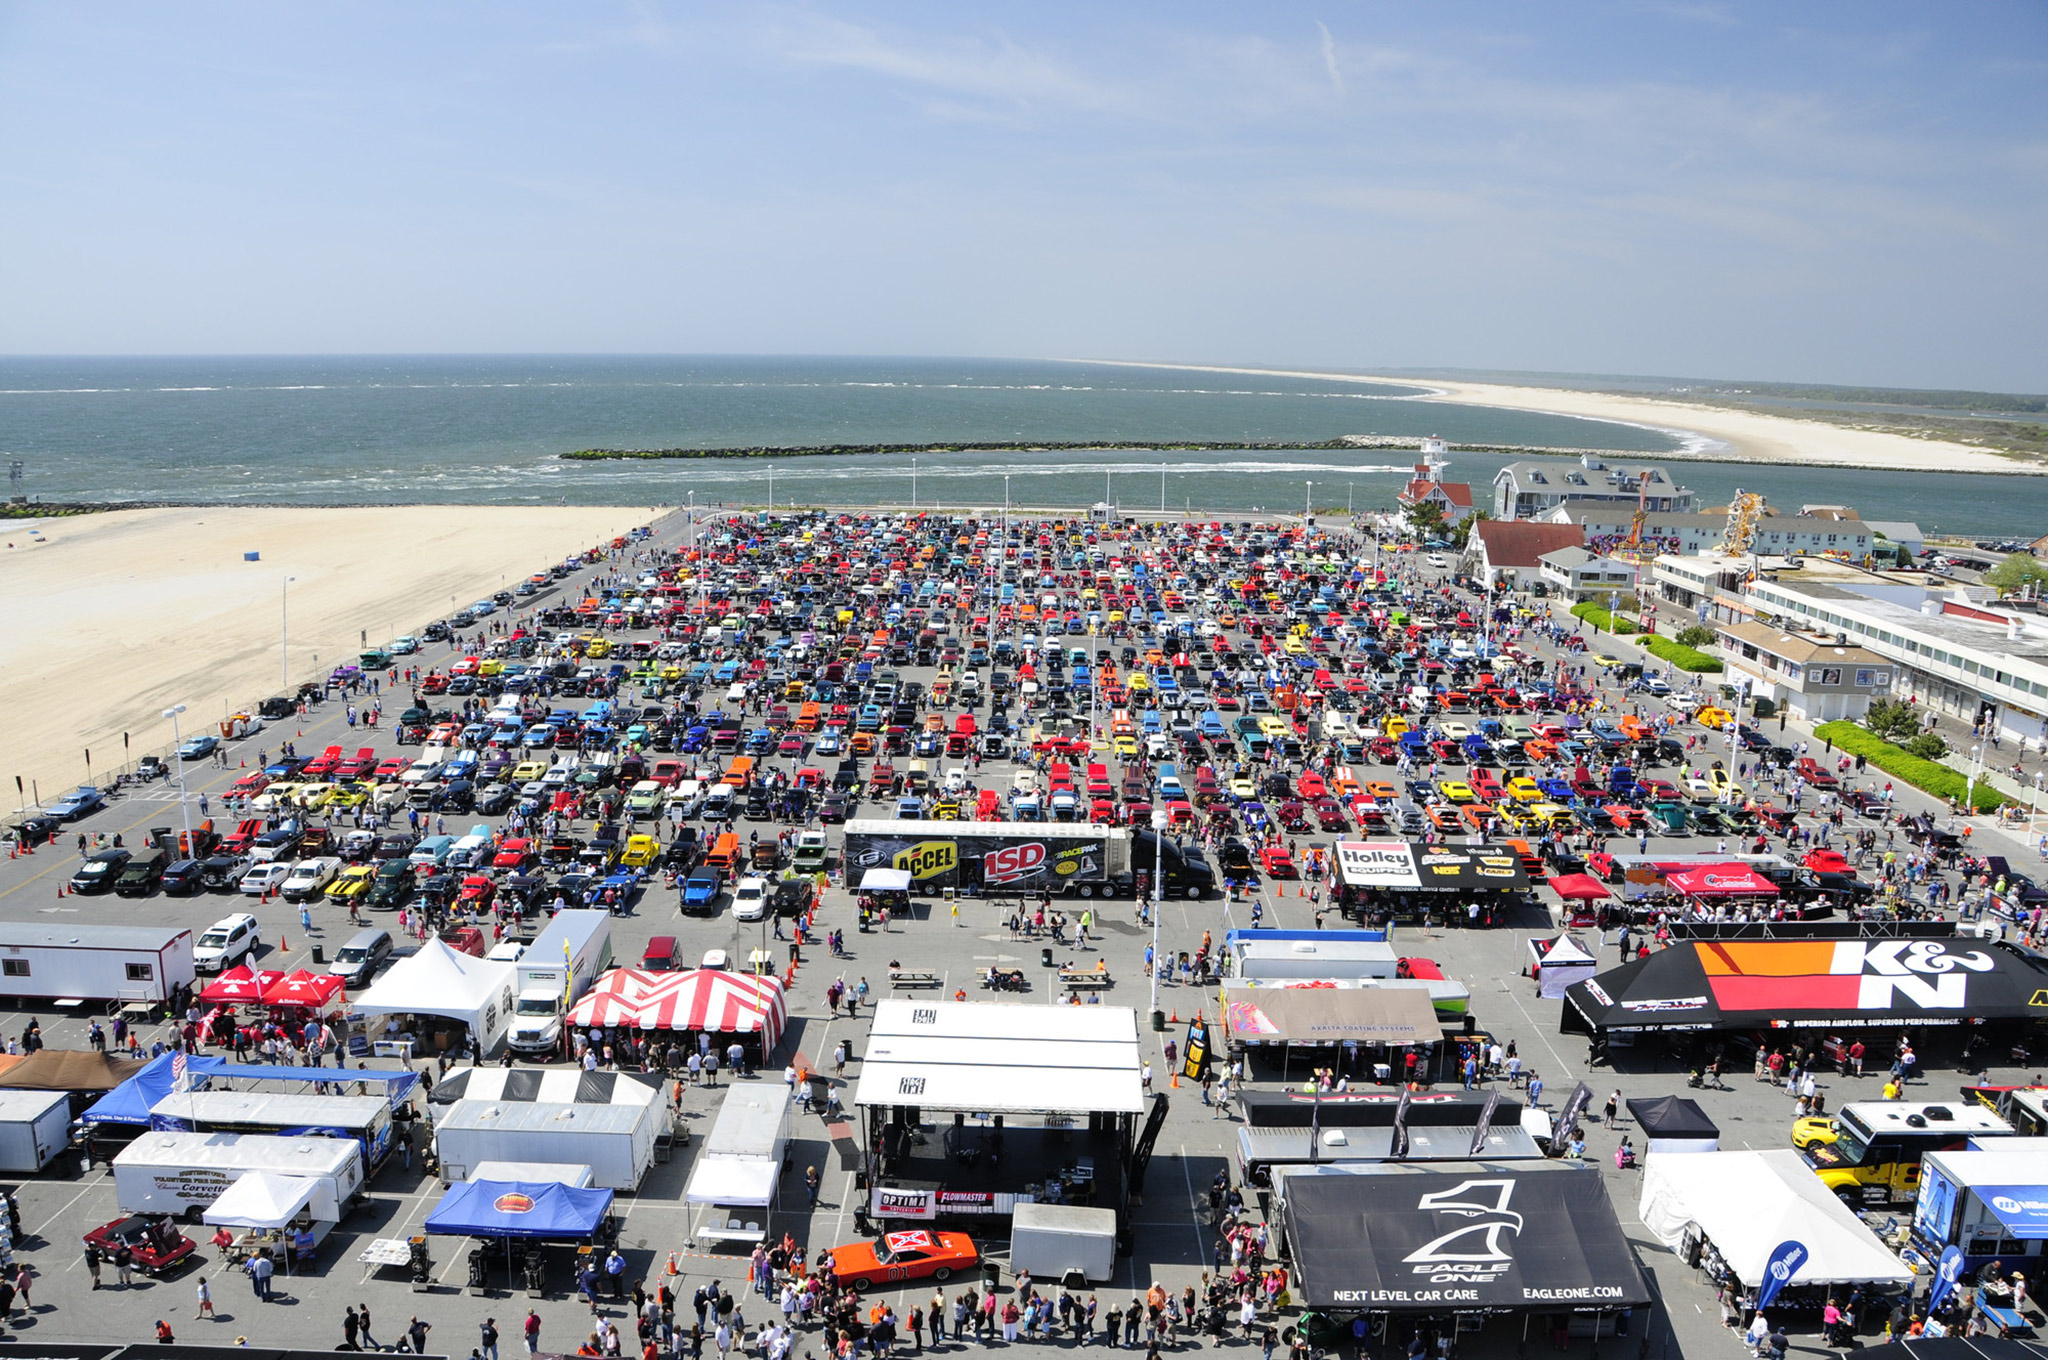 Cruisin Ocean City >> 25th Annual Cruisin' Ocean City Showcases the Baddest ...